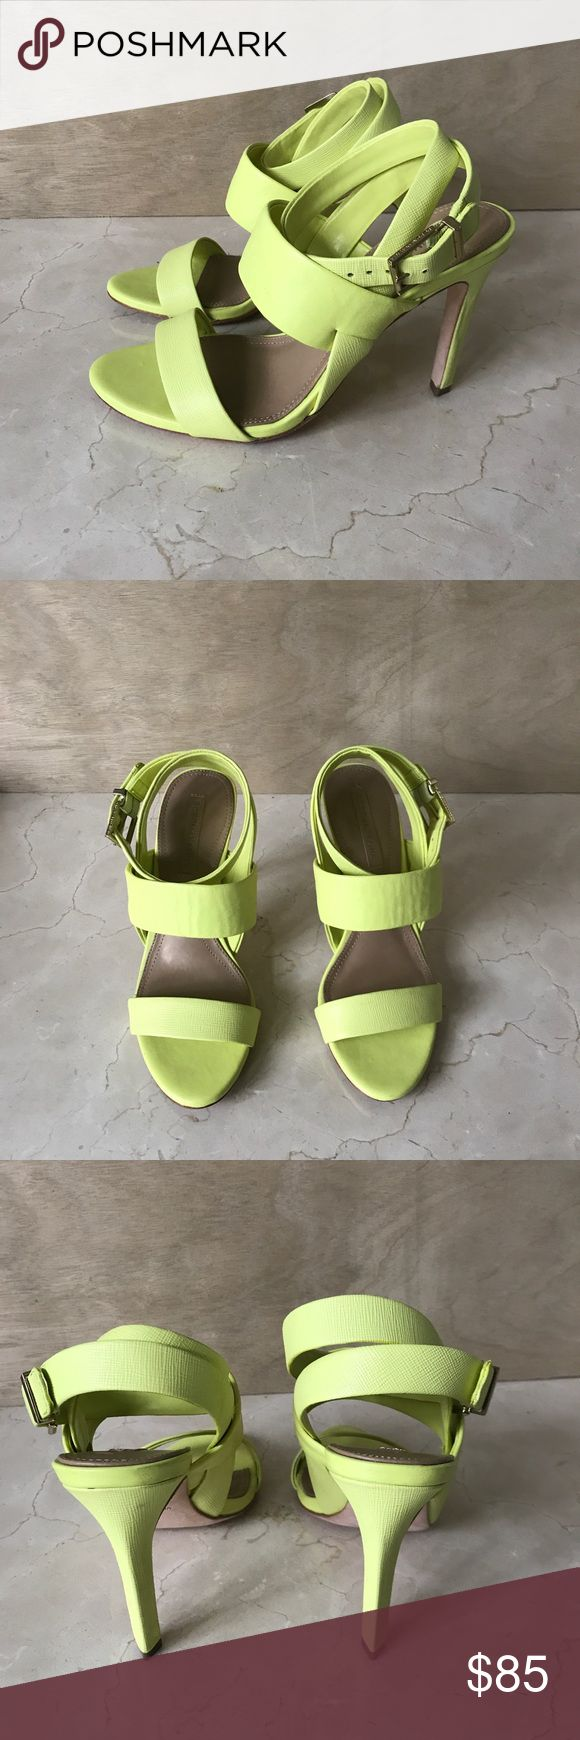 BCBG LIME GREEN SANDALS Worn twice, great for summer! BCBGMaxAzria Shoes Sandals